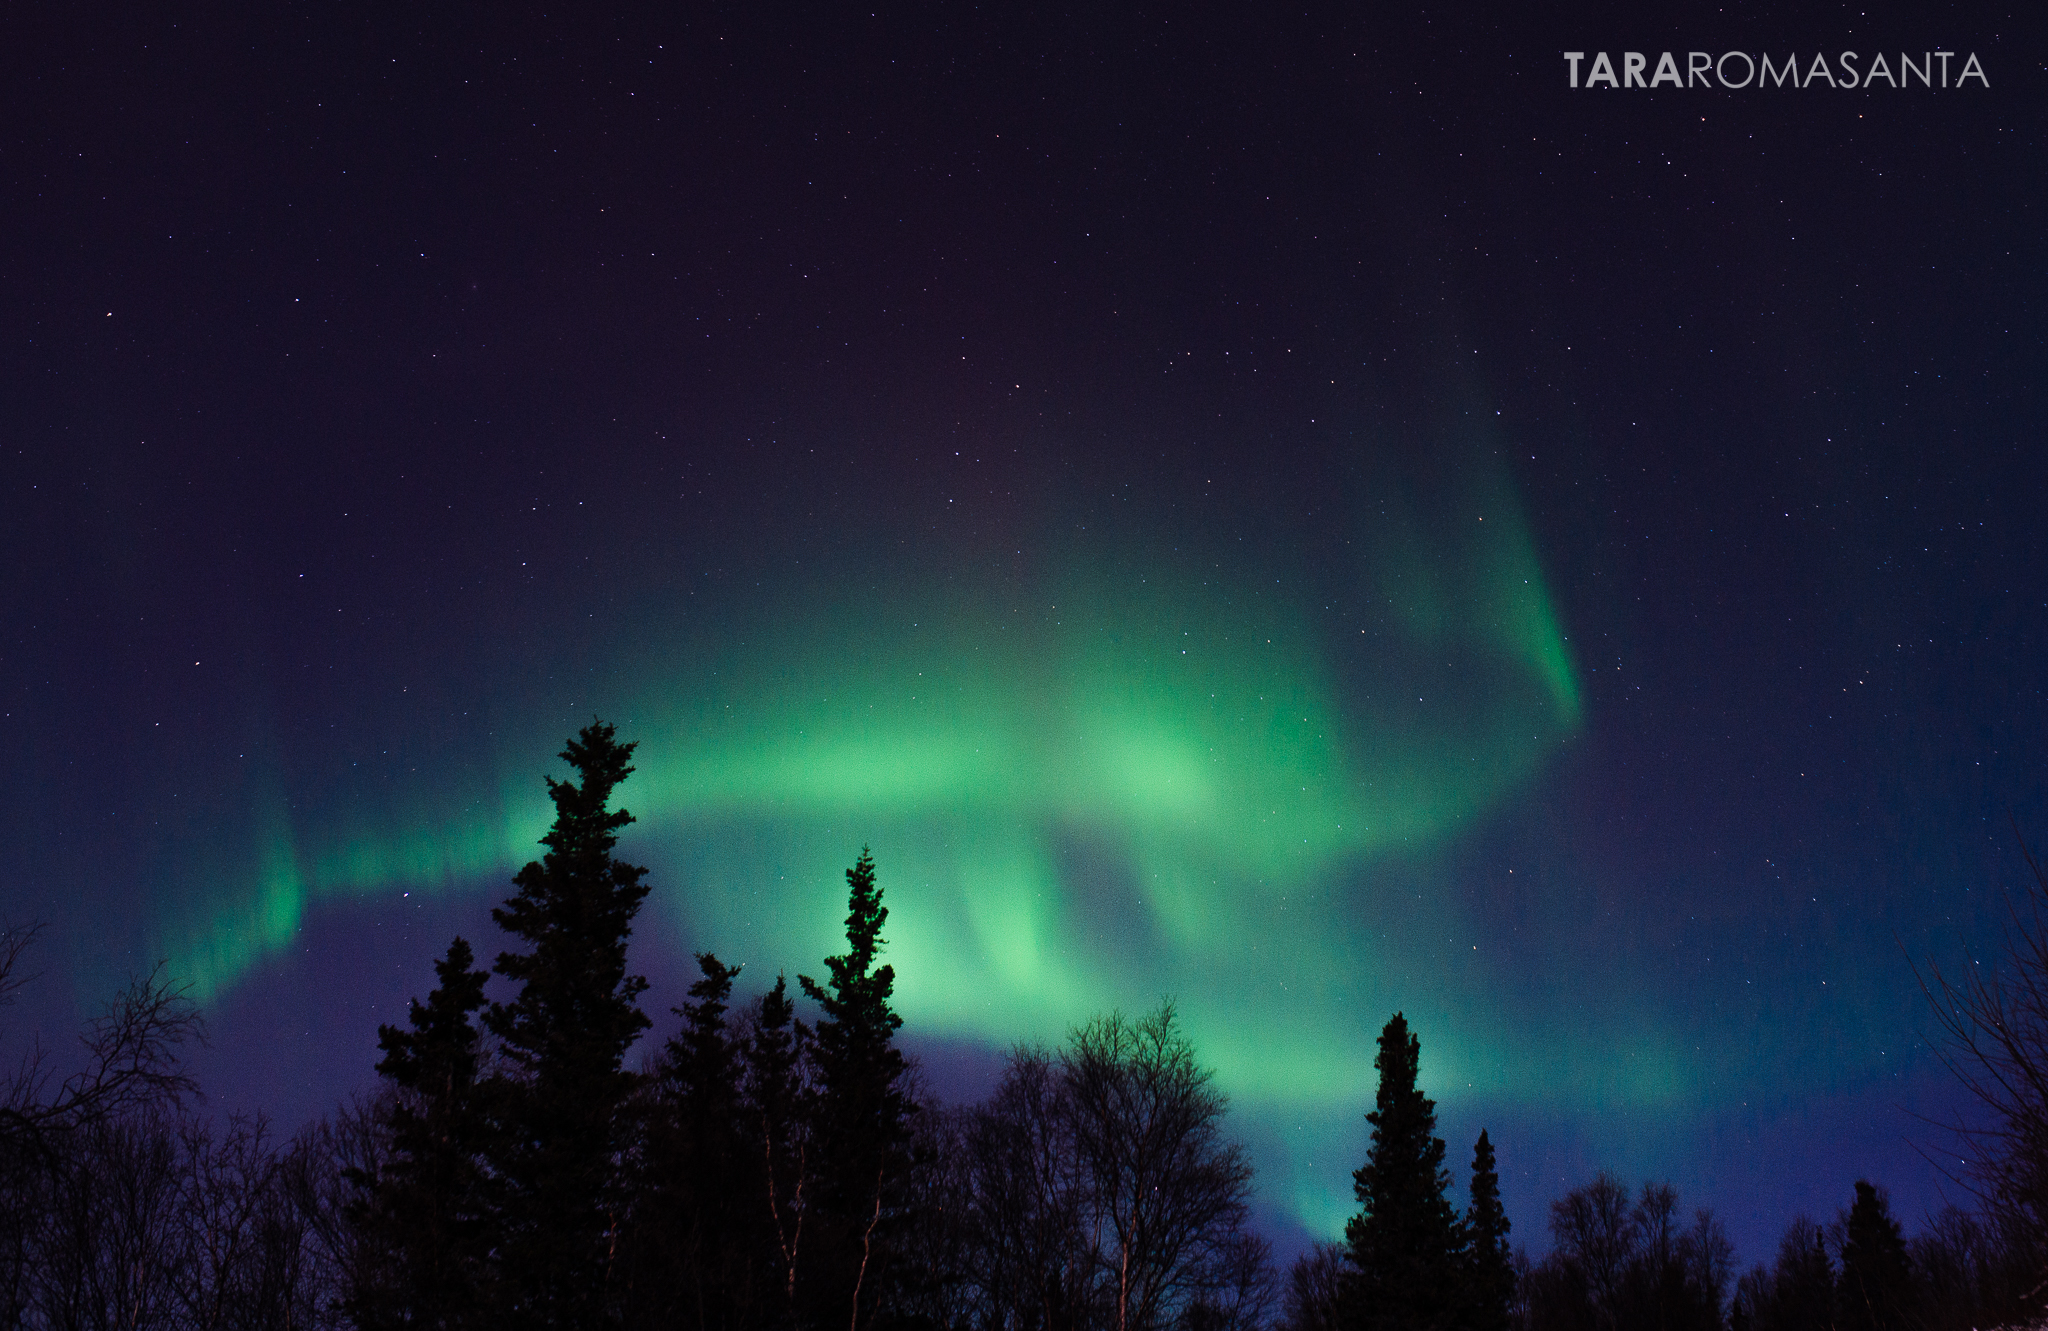 The aurora borealis tells stories in the night sky.